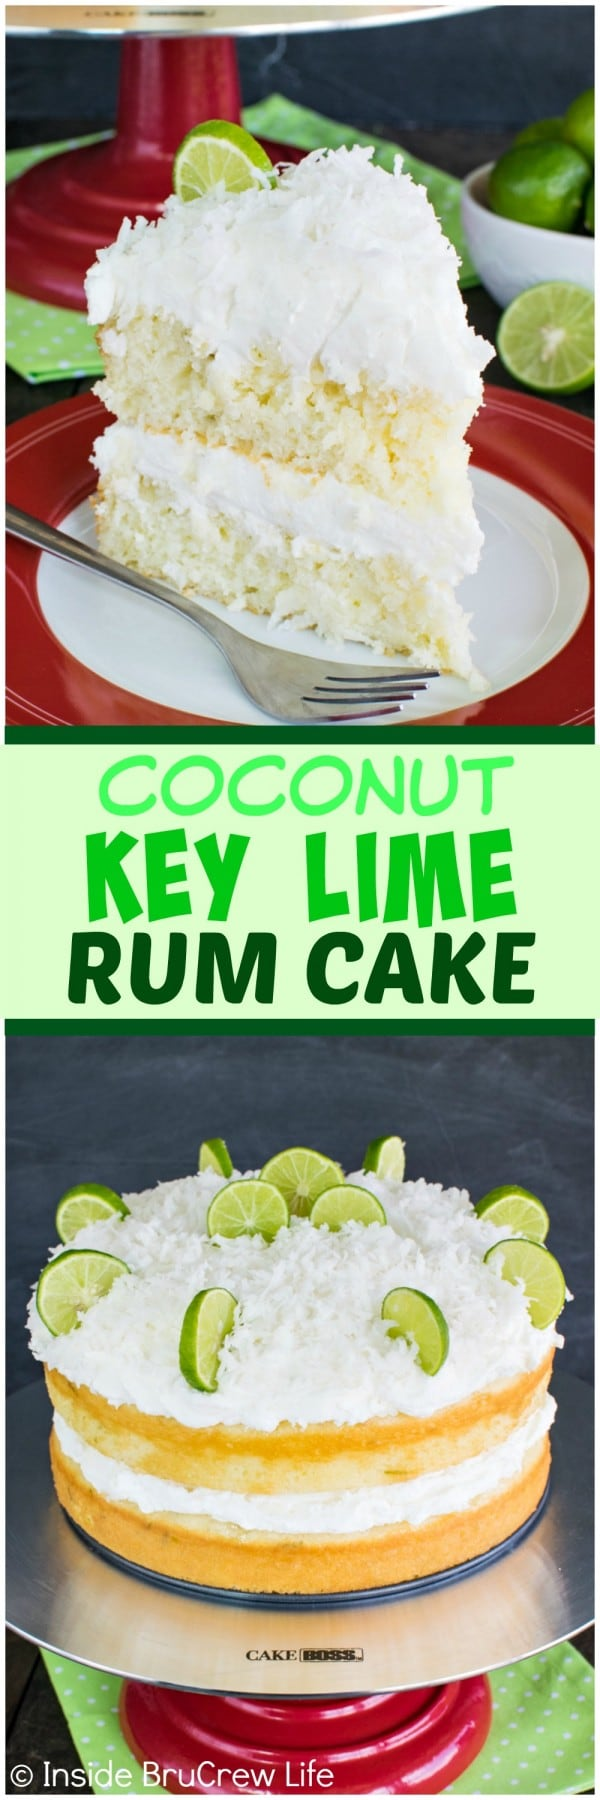 Coconut Key Lime Rum Cake - coconut frosting and a rum butter glaze ...